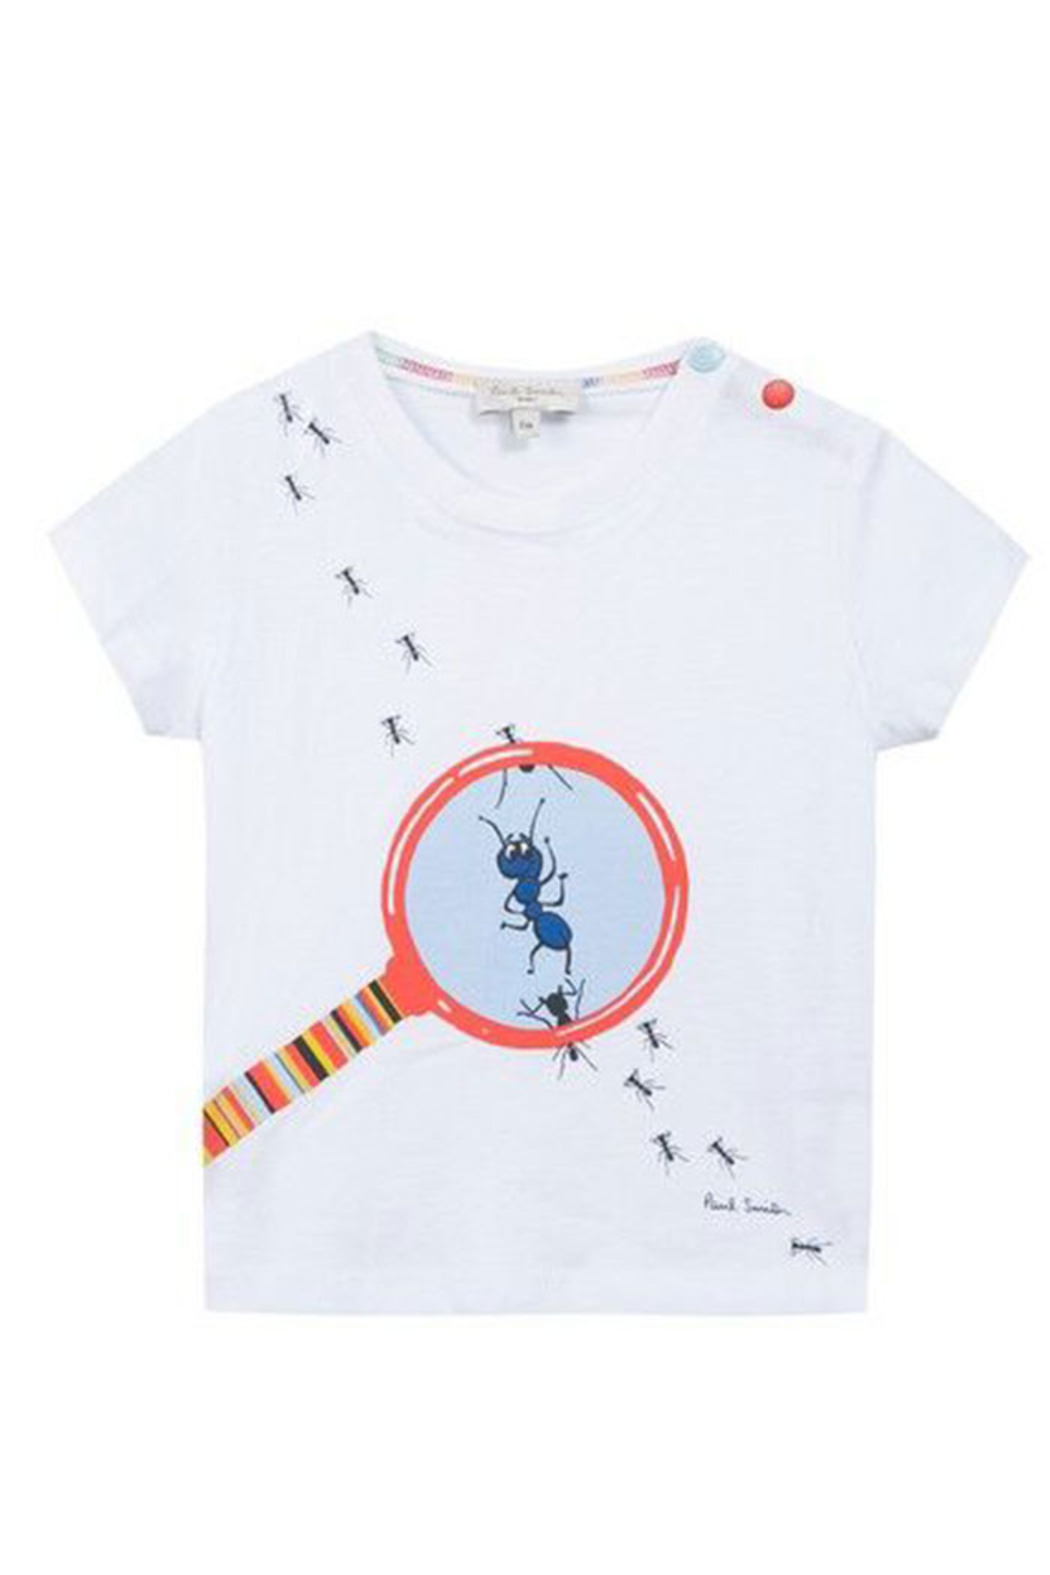 Paul Smith Ant Magnifying Shirt - Main Image